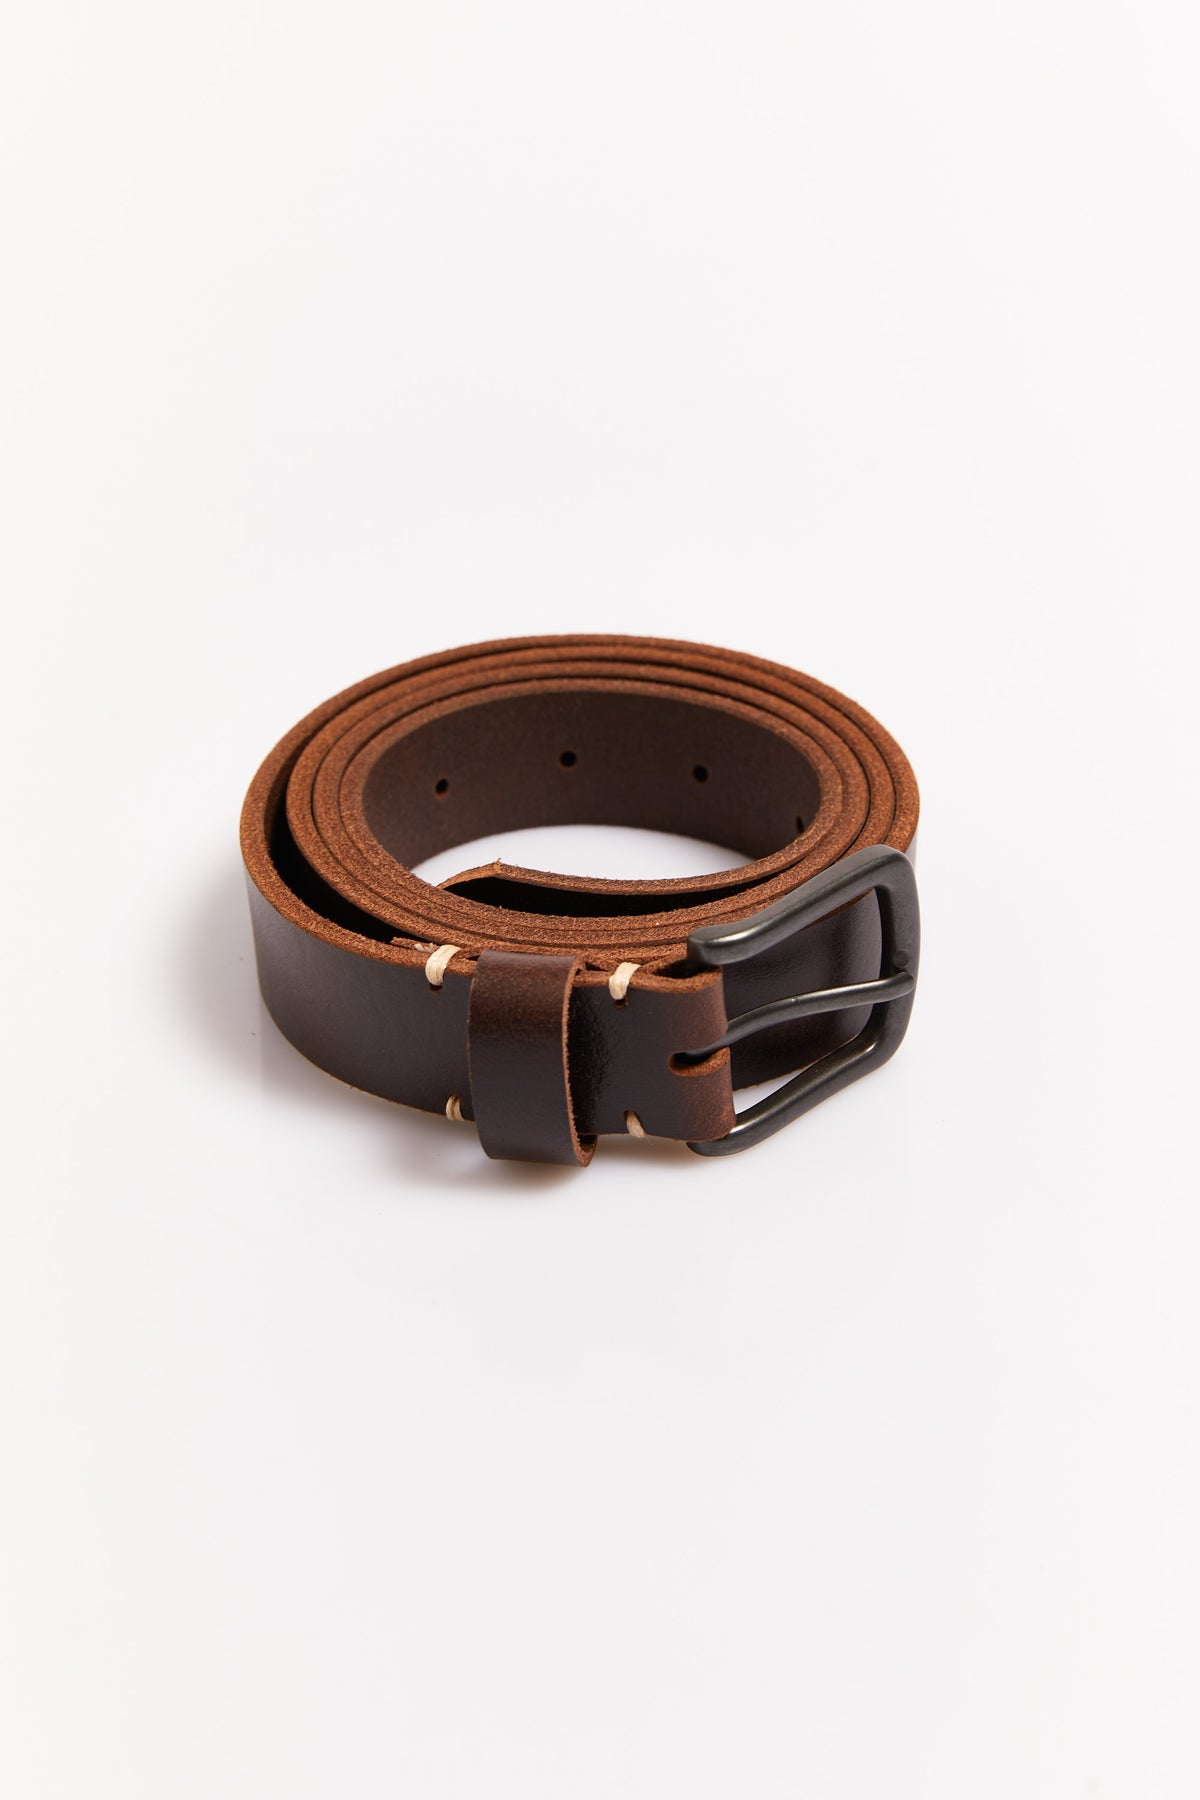 NTH Belt Leather Brown